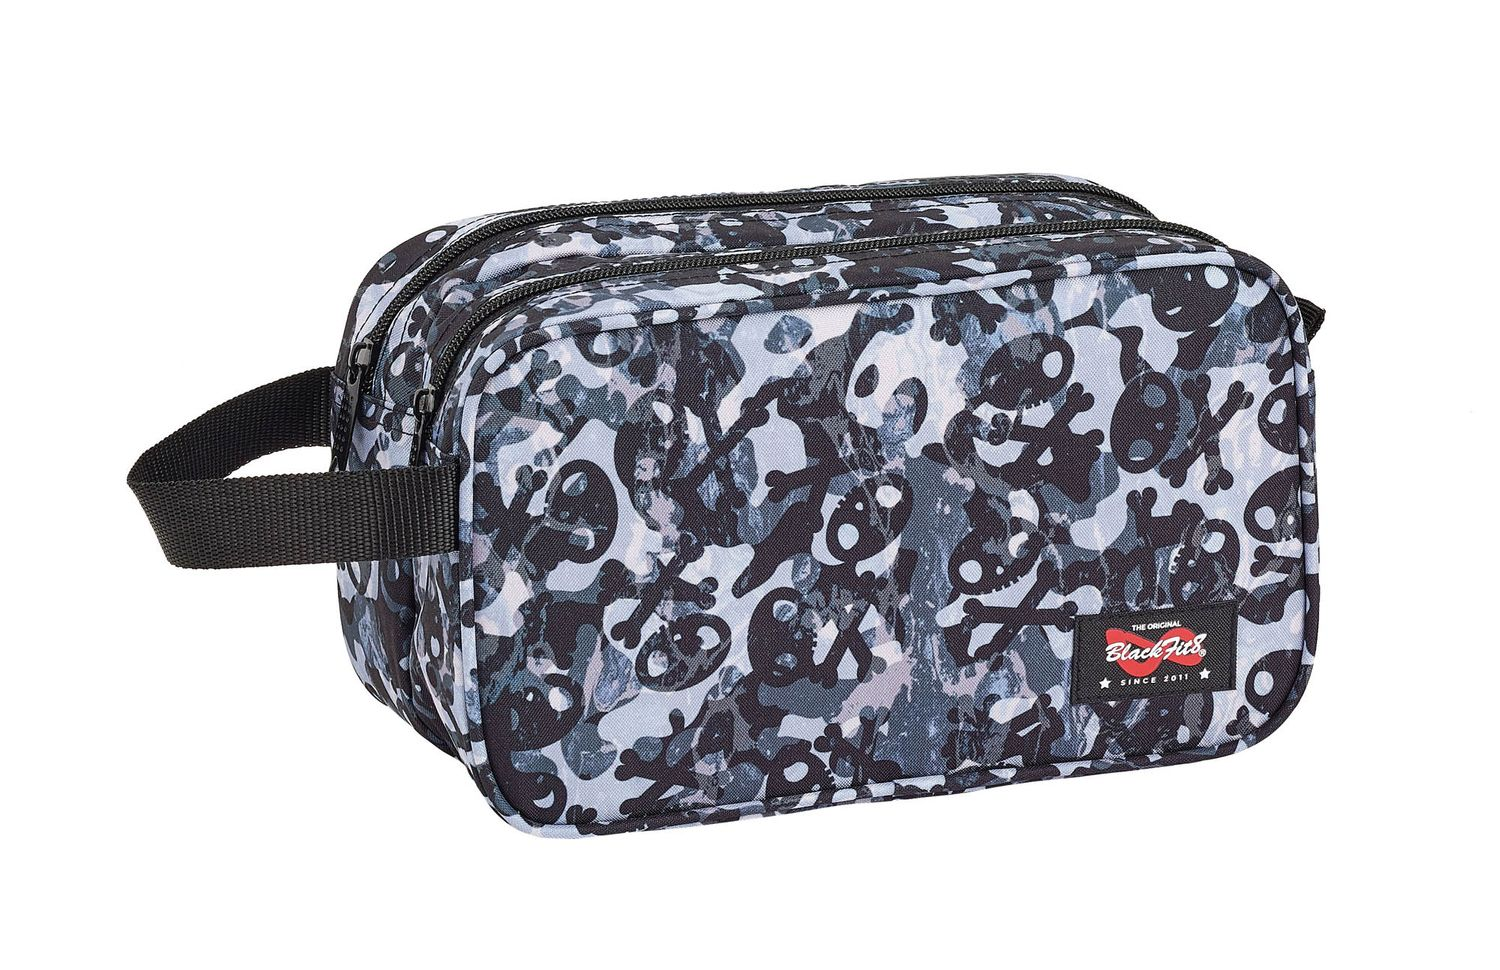 Blackfit8 SKULLS Wash Travel Bag 26cm – image 1